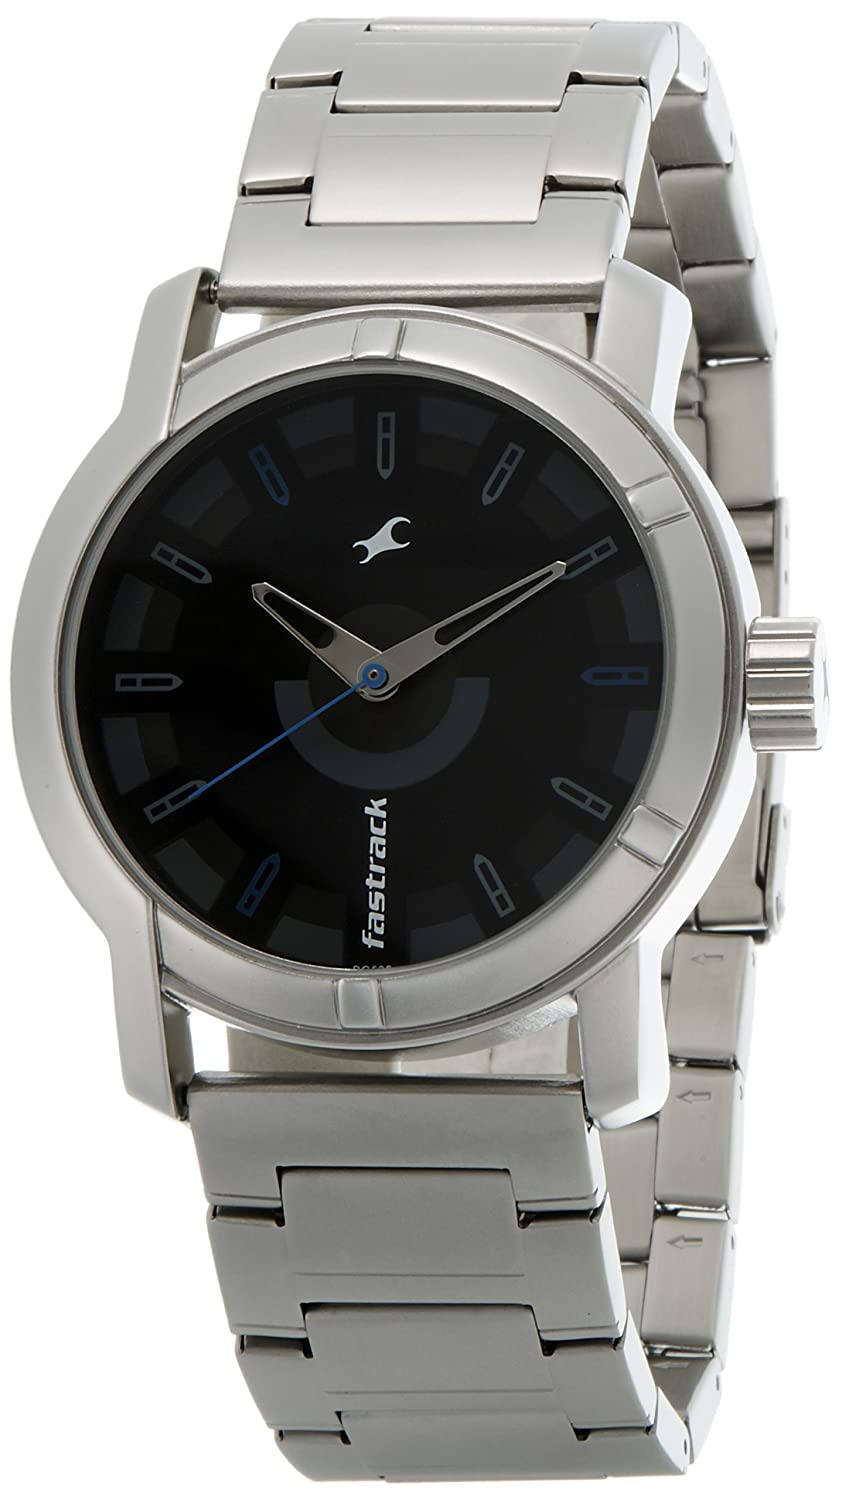 19455bc2f0 Buy Fastrack SM Upgrades Analog Black Dial Men's Watch -NK3021SM01 Online at  Low Prices in India - Amazon.in